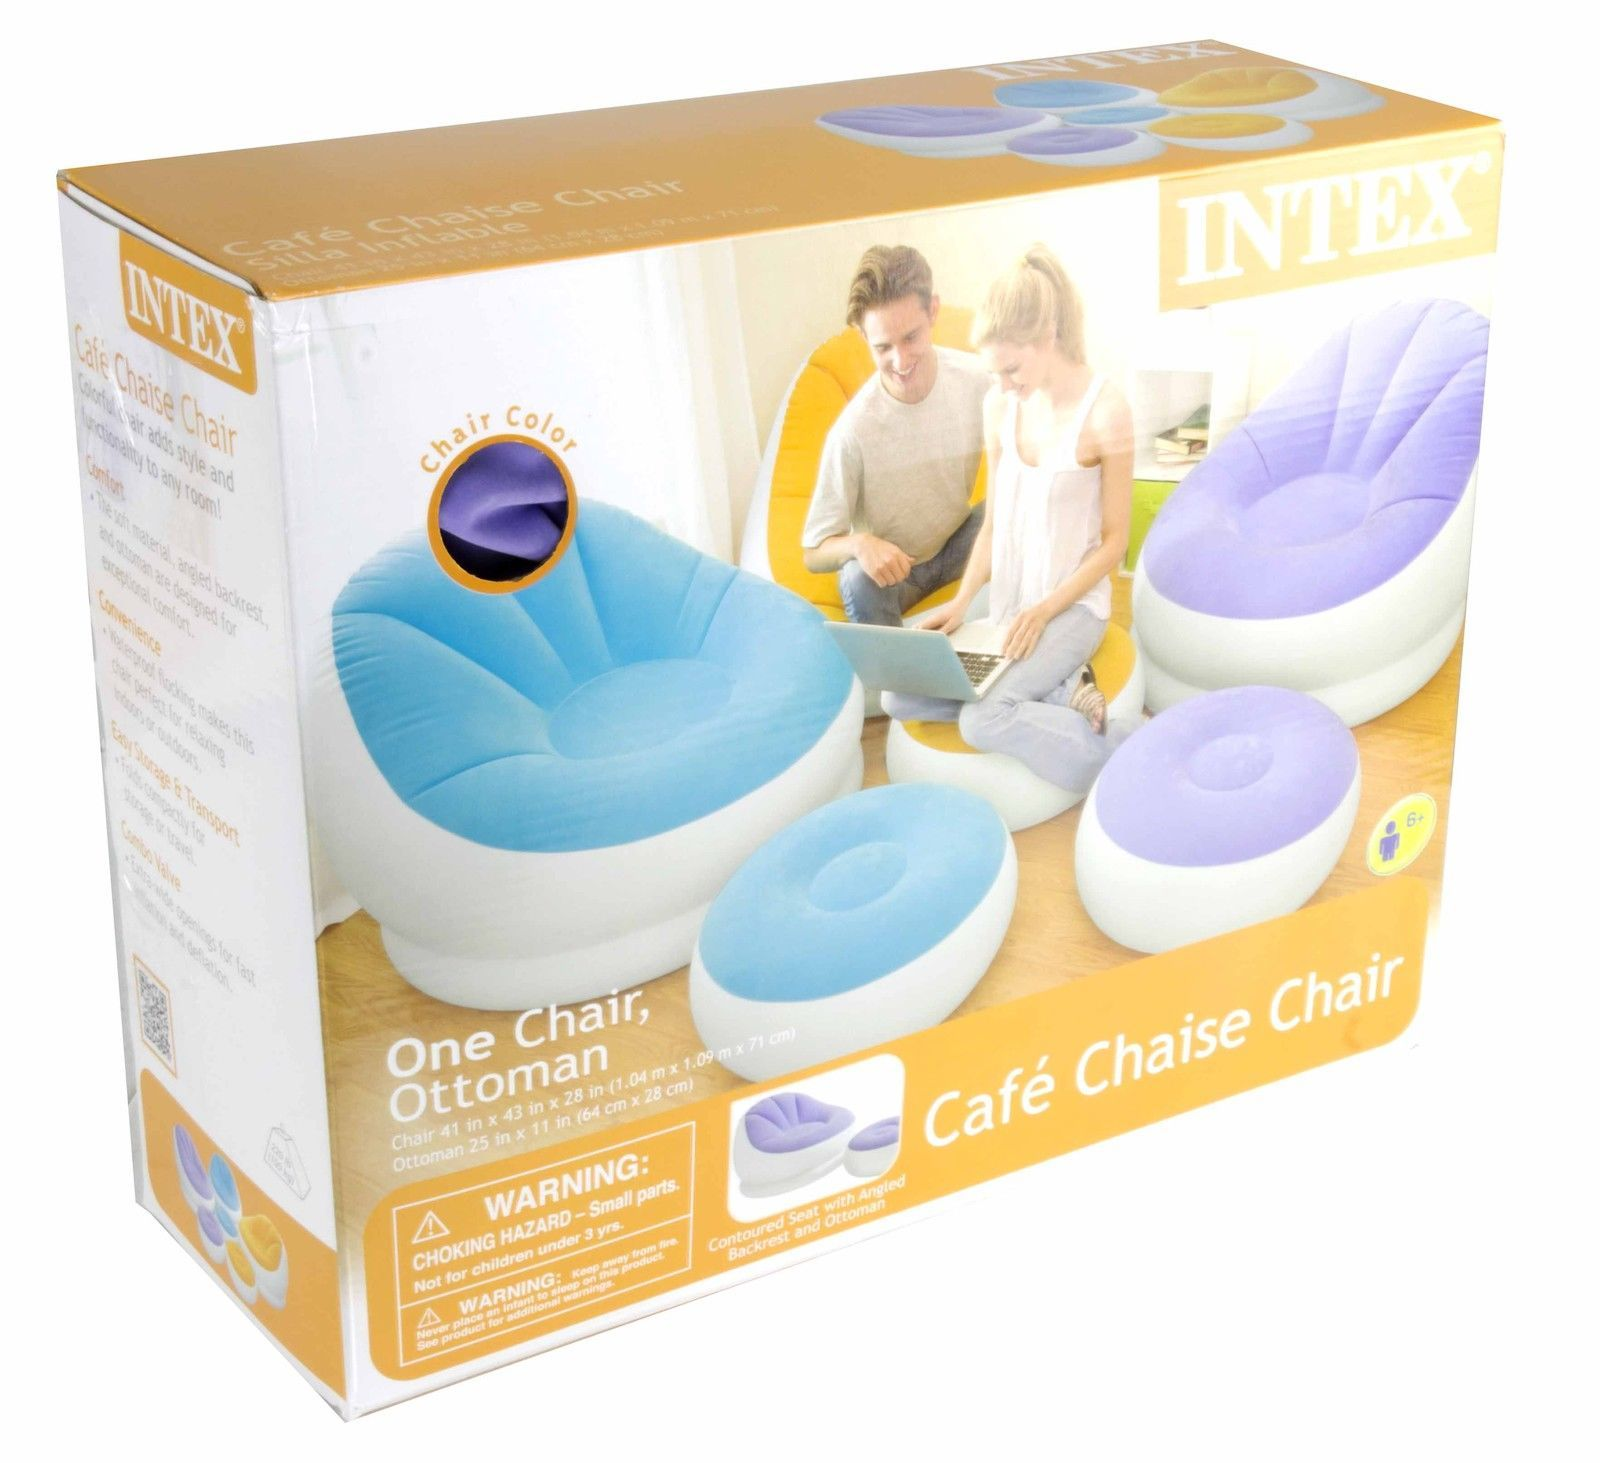 Intex Cafe Chaise Chair Inflatable Dorm Lounge Seat with Ottoman